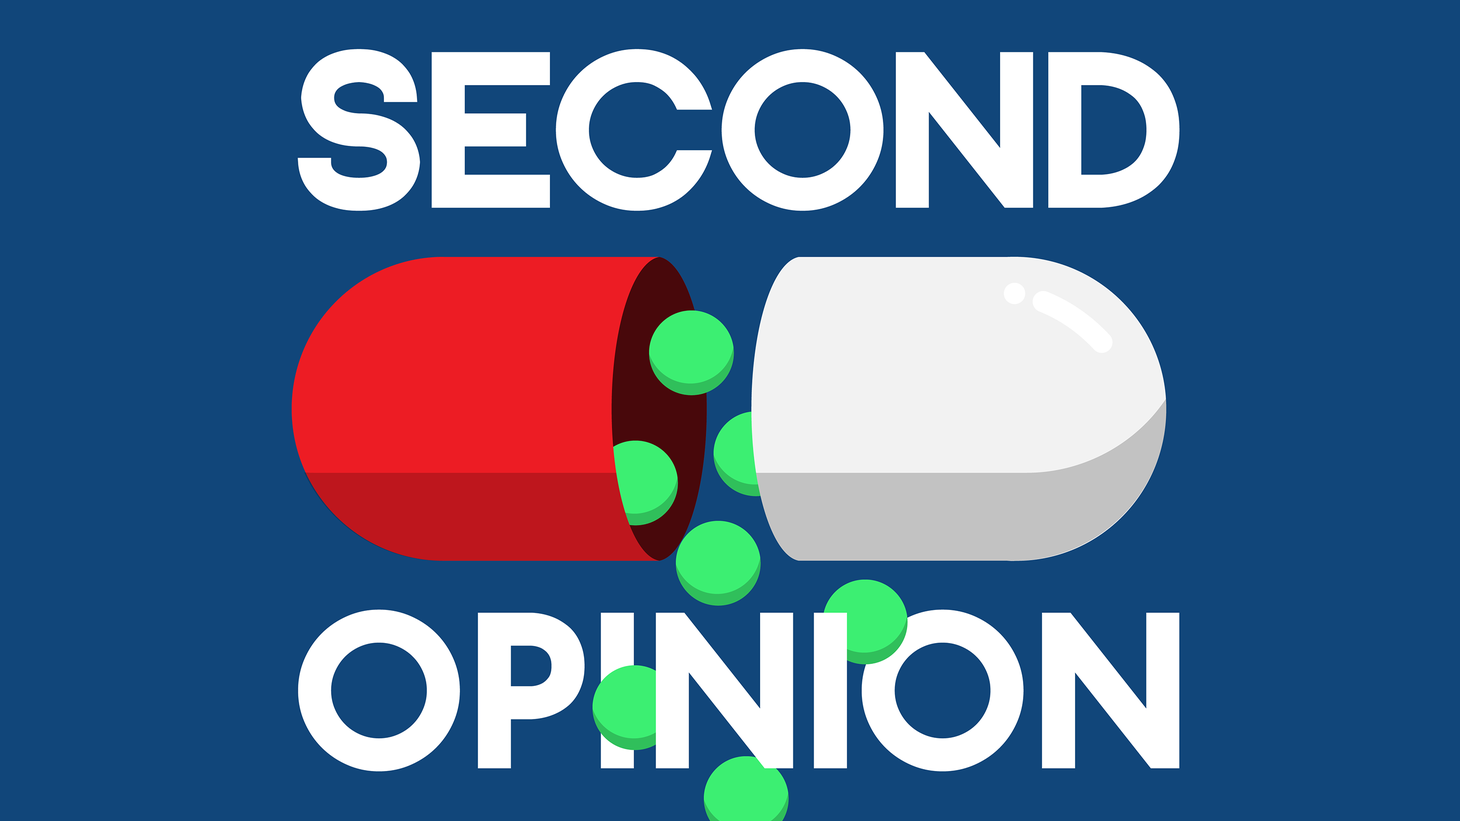 The decision about how often you need to see the doctor is subjective and should be discussed ahead of time...